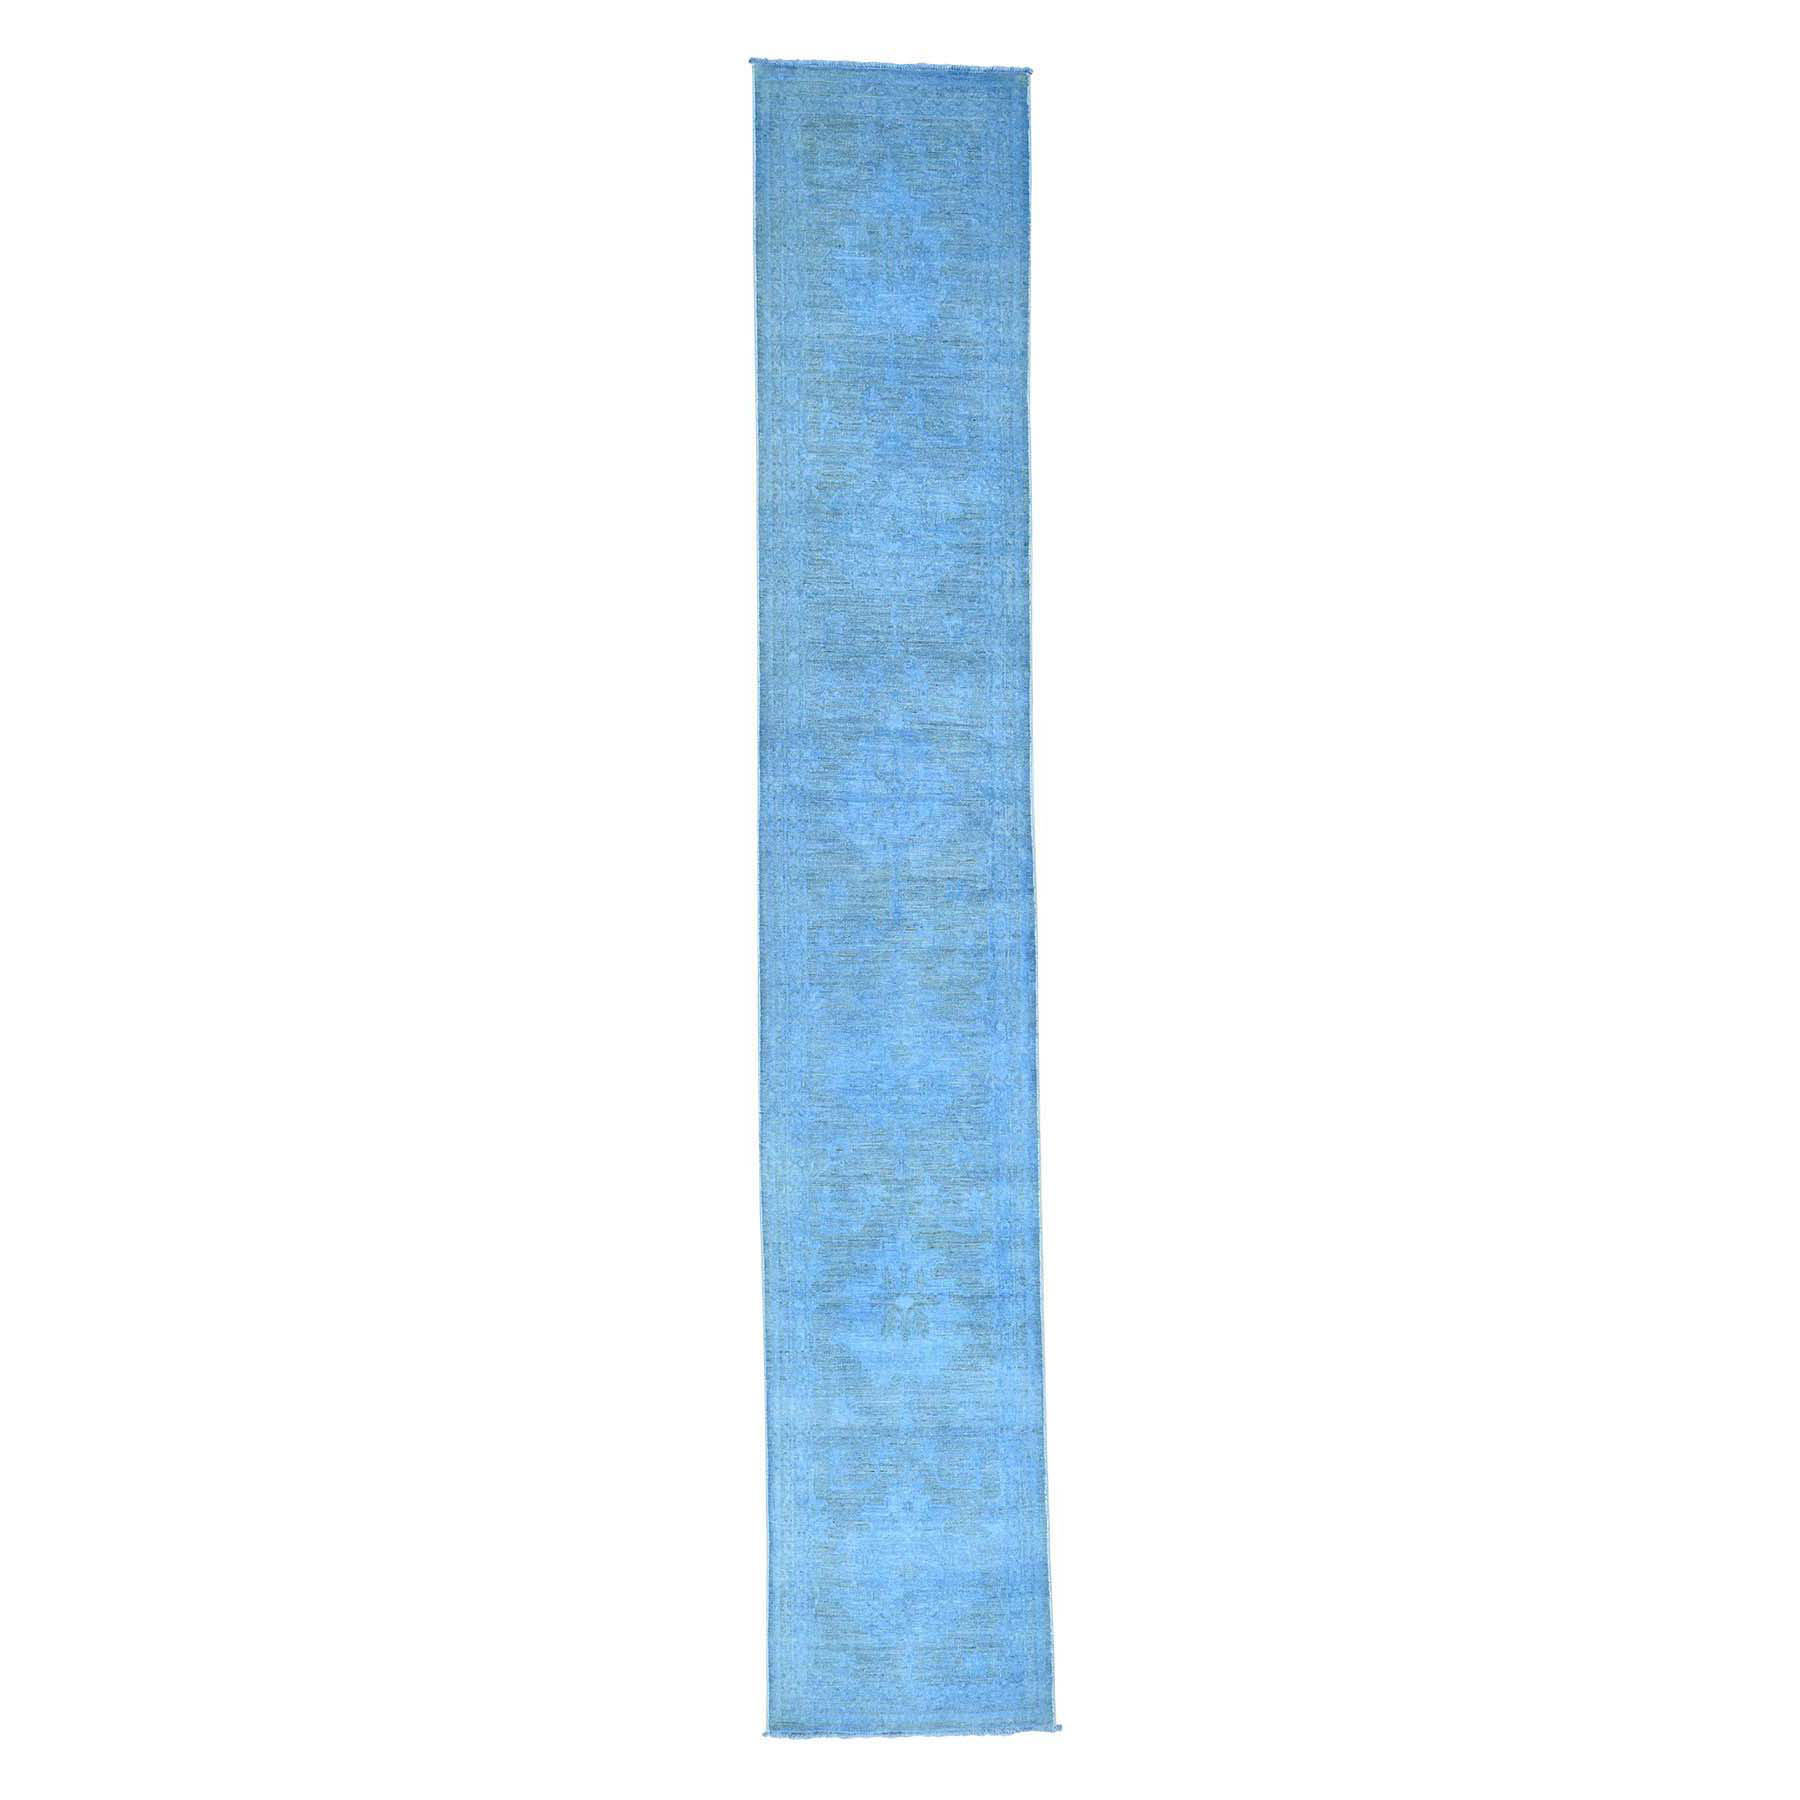 Fetneh Collection And Vintage Overdyed Collection Hand Knotted Blue Rug No: 0170158